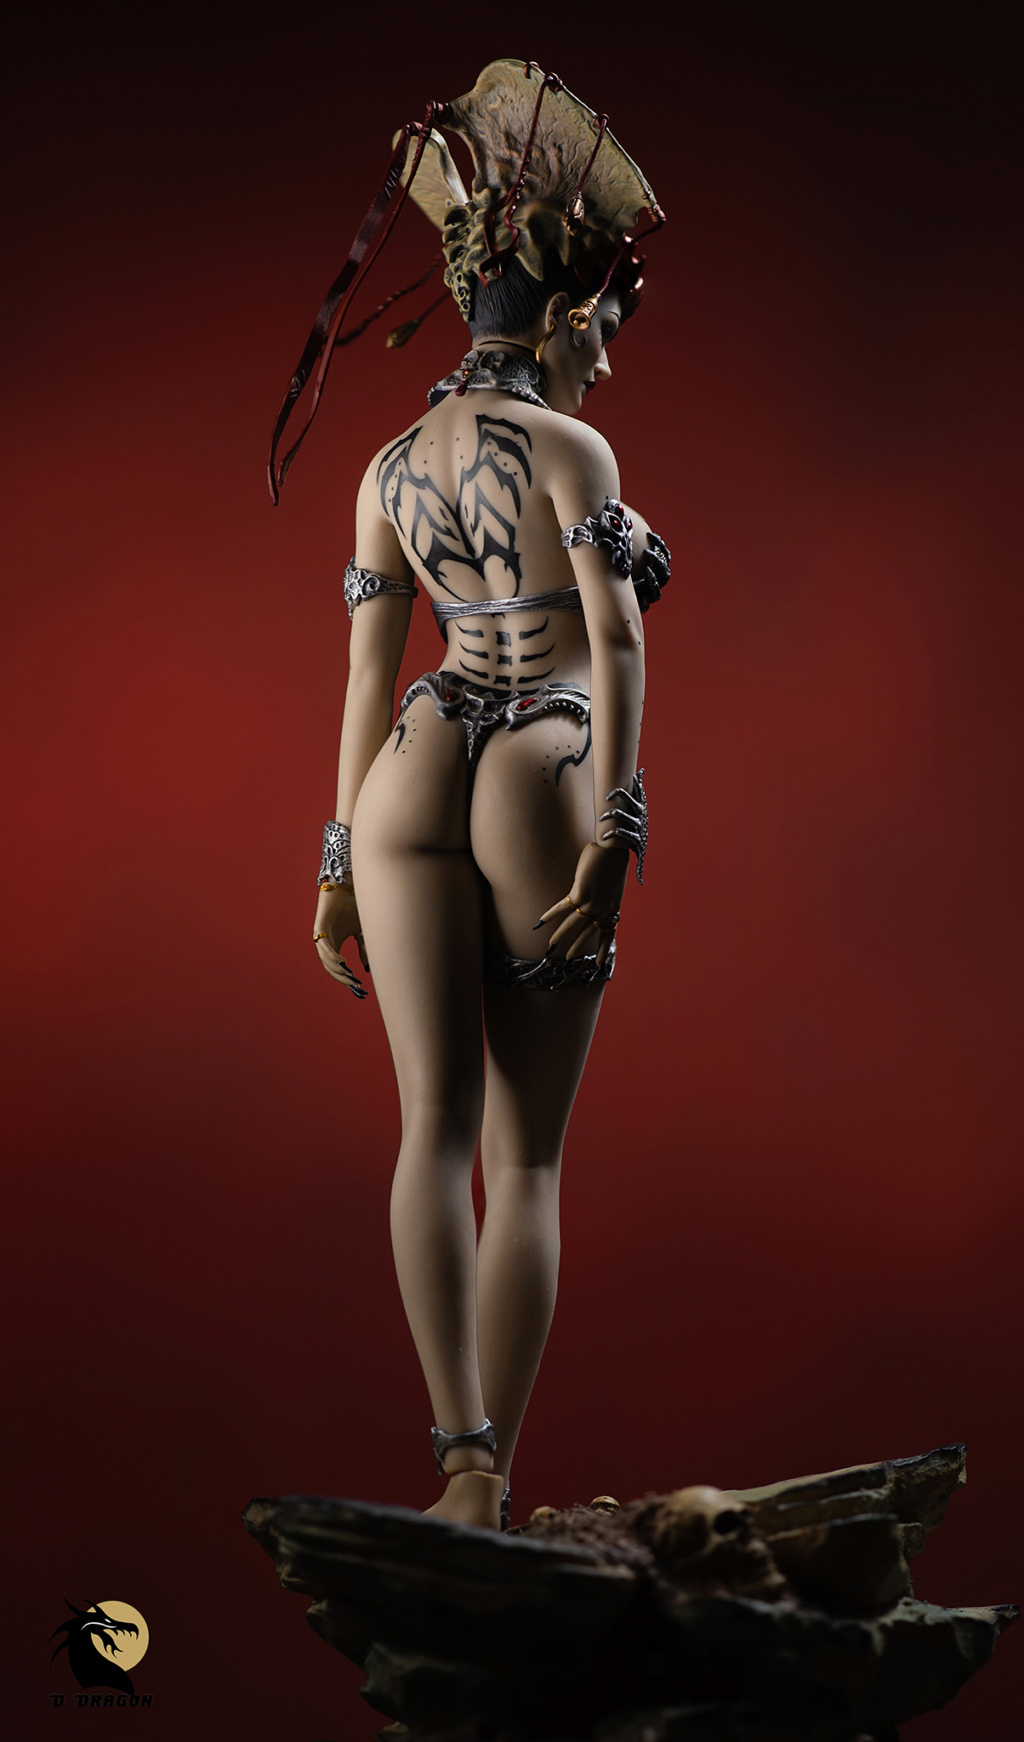 tbleague - NEW PRODUCT: Tbleague x SIDESHOW New: 1/6 Court of the Dead: Gethsemoni The Dead Queen action figure (PL2019-147) - Page 2 Gethse17